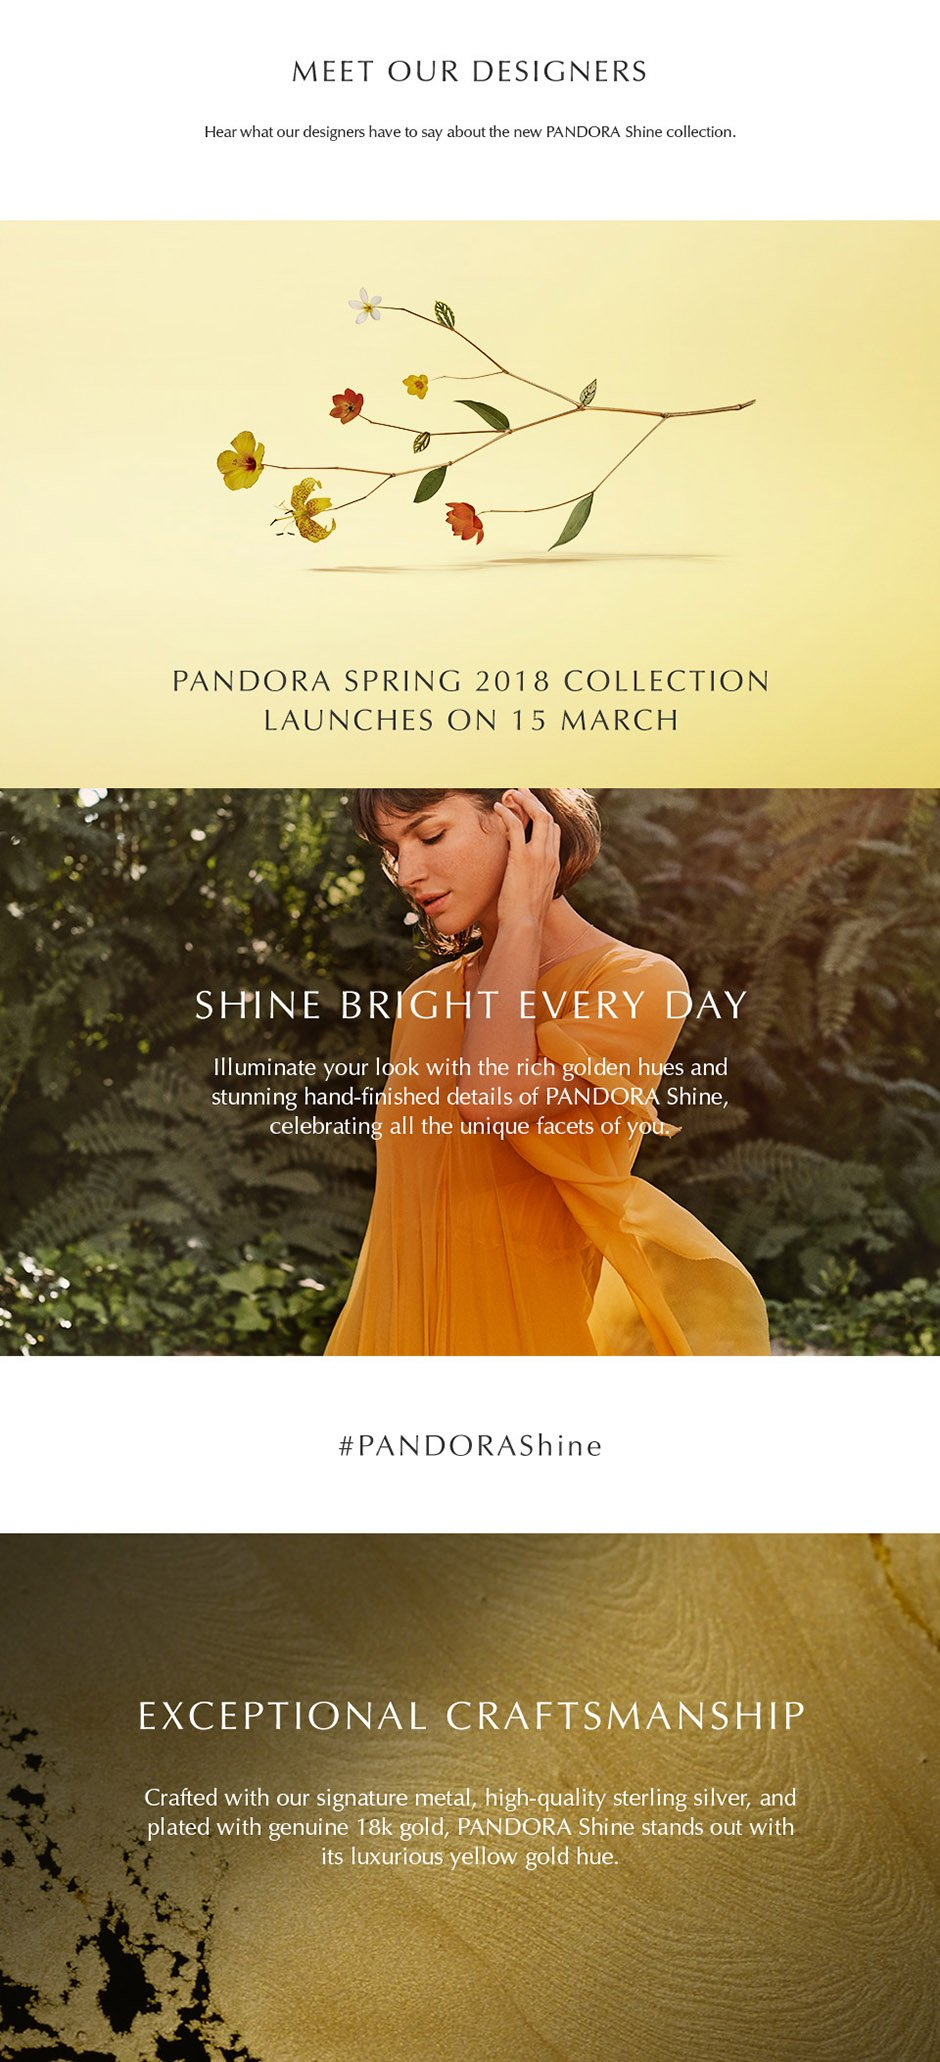 PANDORA SPRING 2018 COLLECTION